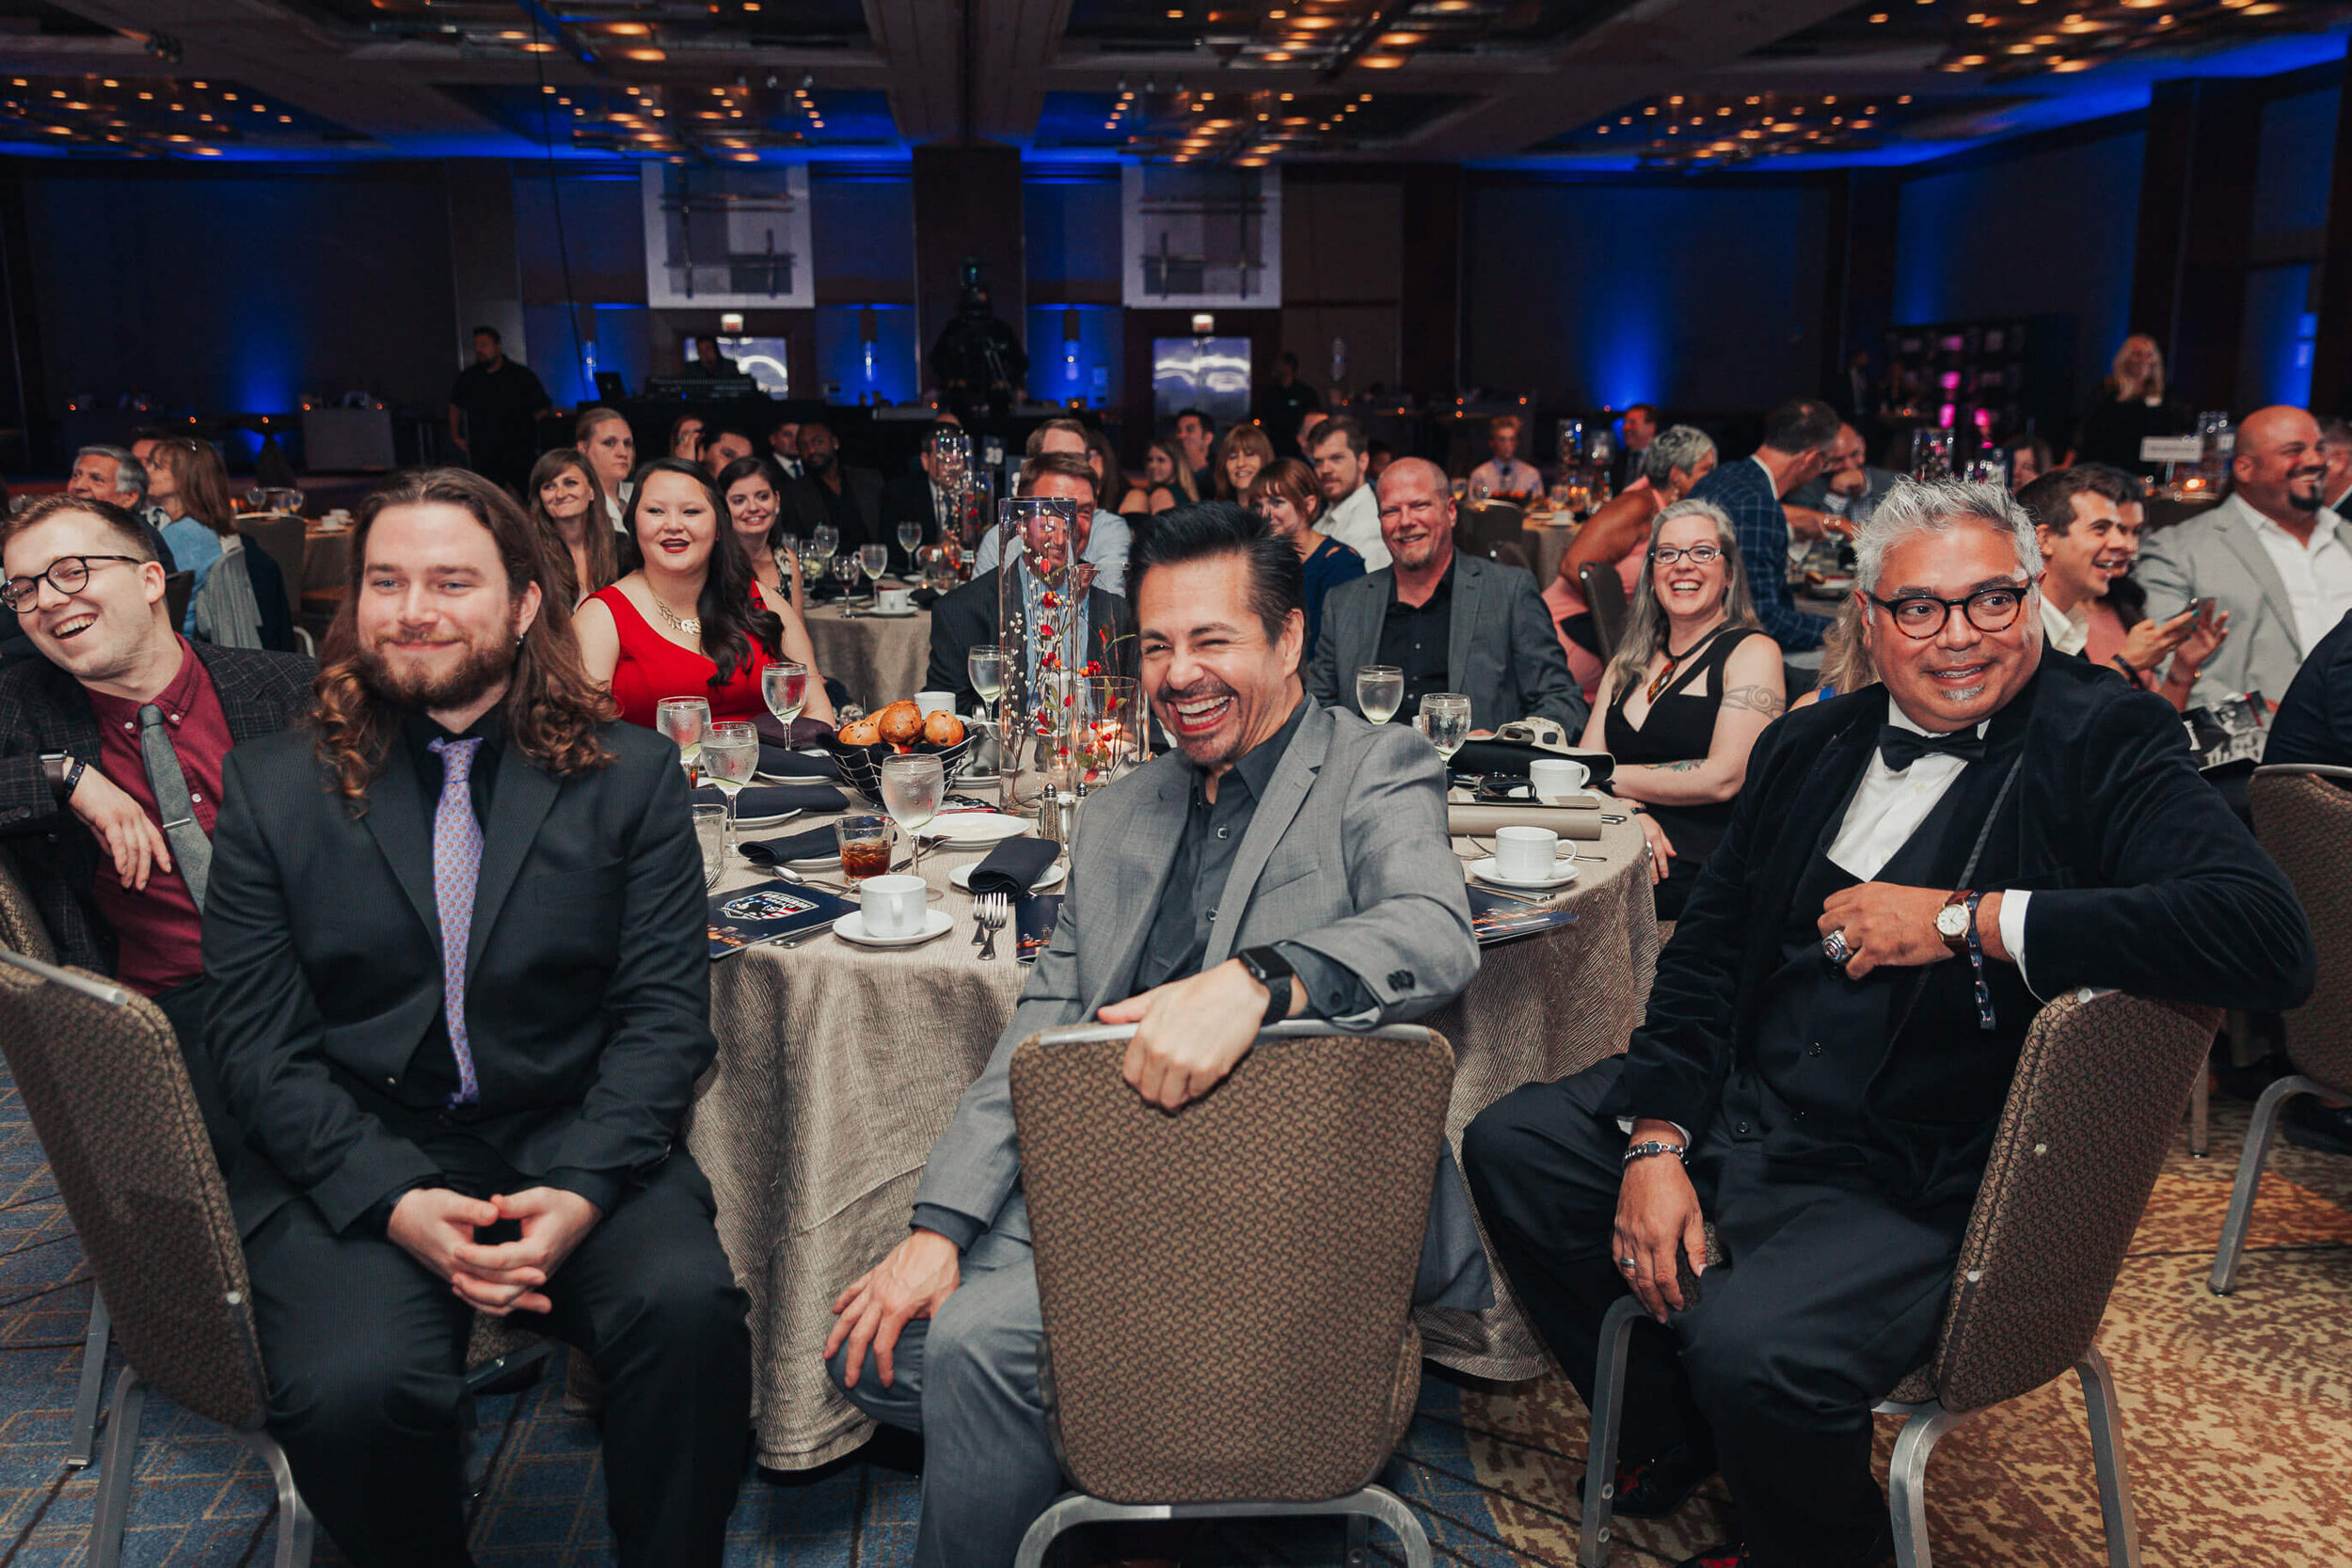 Chicago Event Photography_Gridiron Greats Assistance Fund Hall of Fame 2019_11.jpg